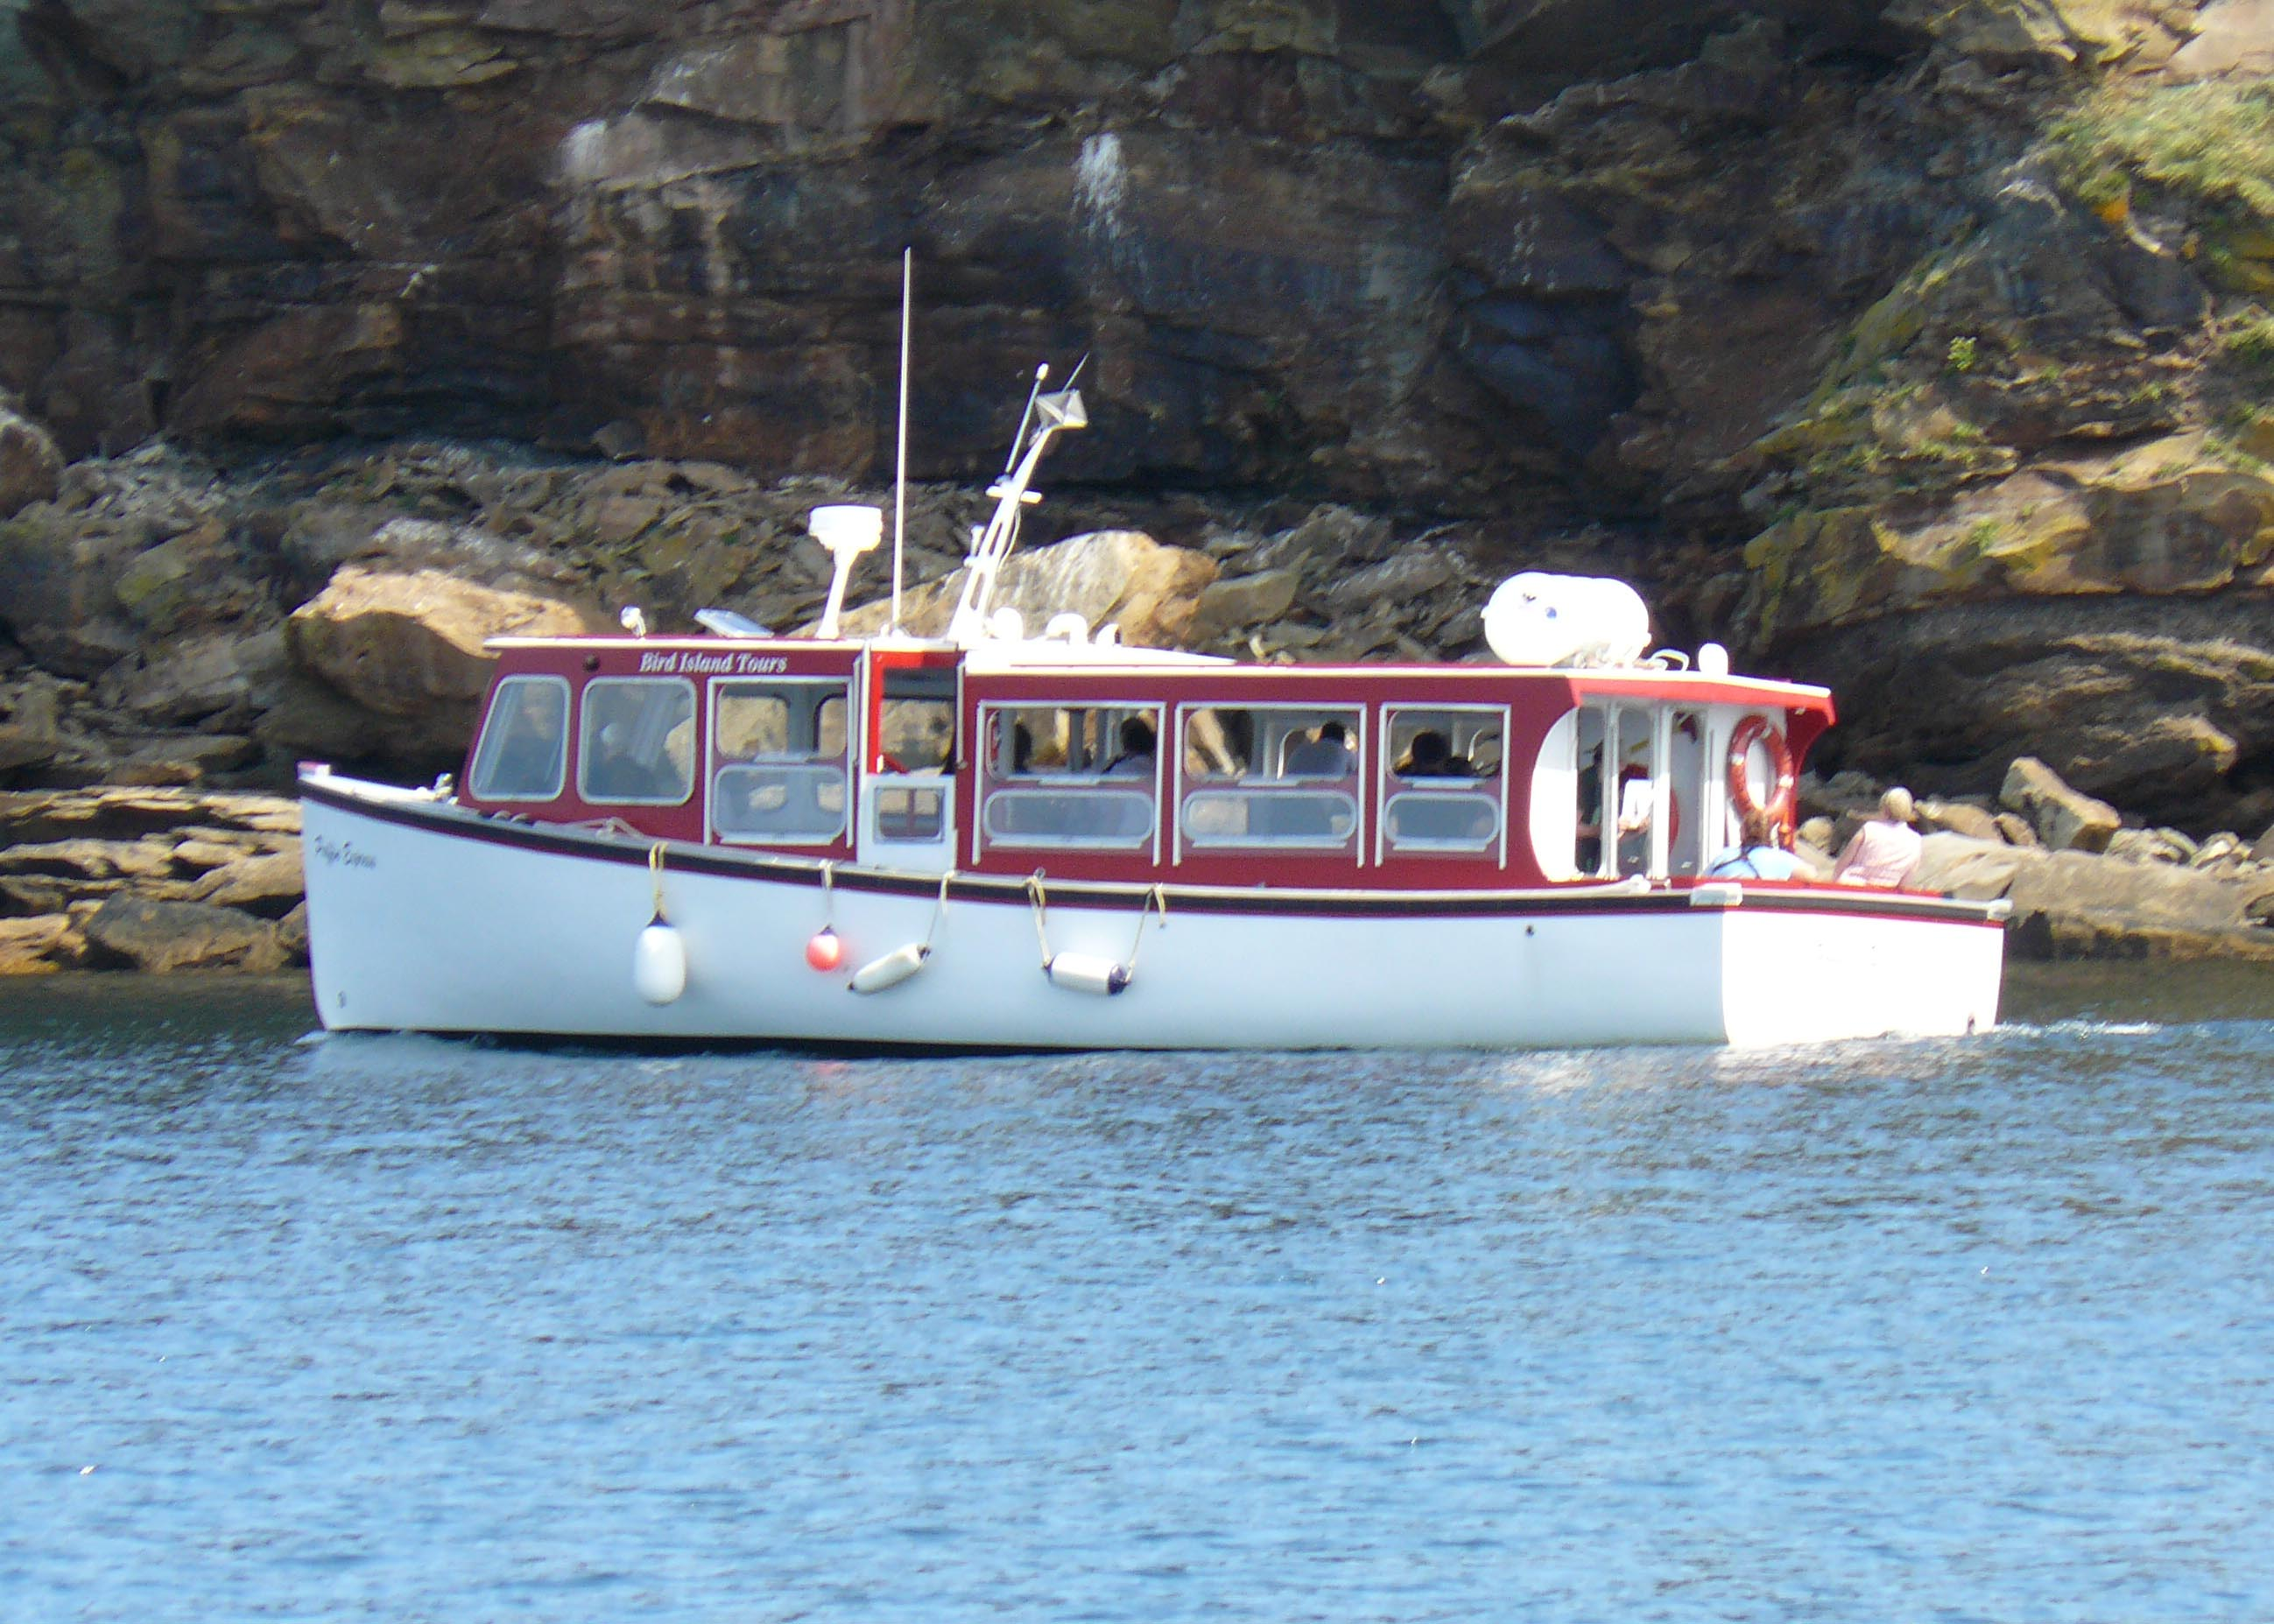 Our boat, the Puffin Express